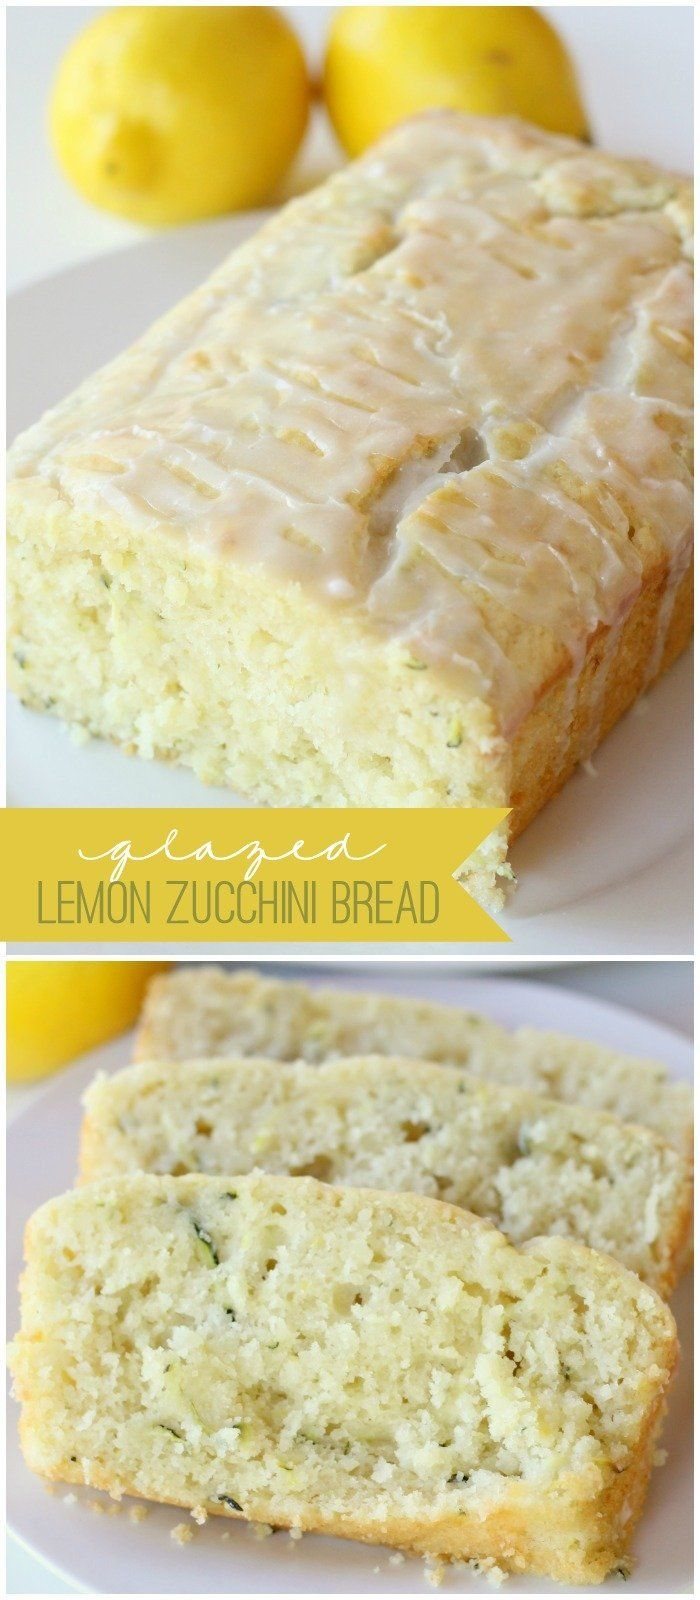 Glazed Lemon Zucchini Bread @FoodBlogs